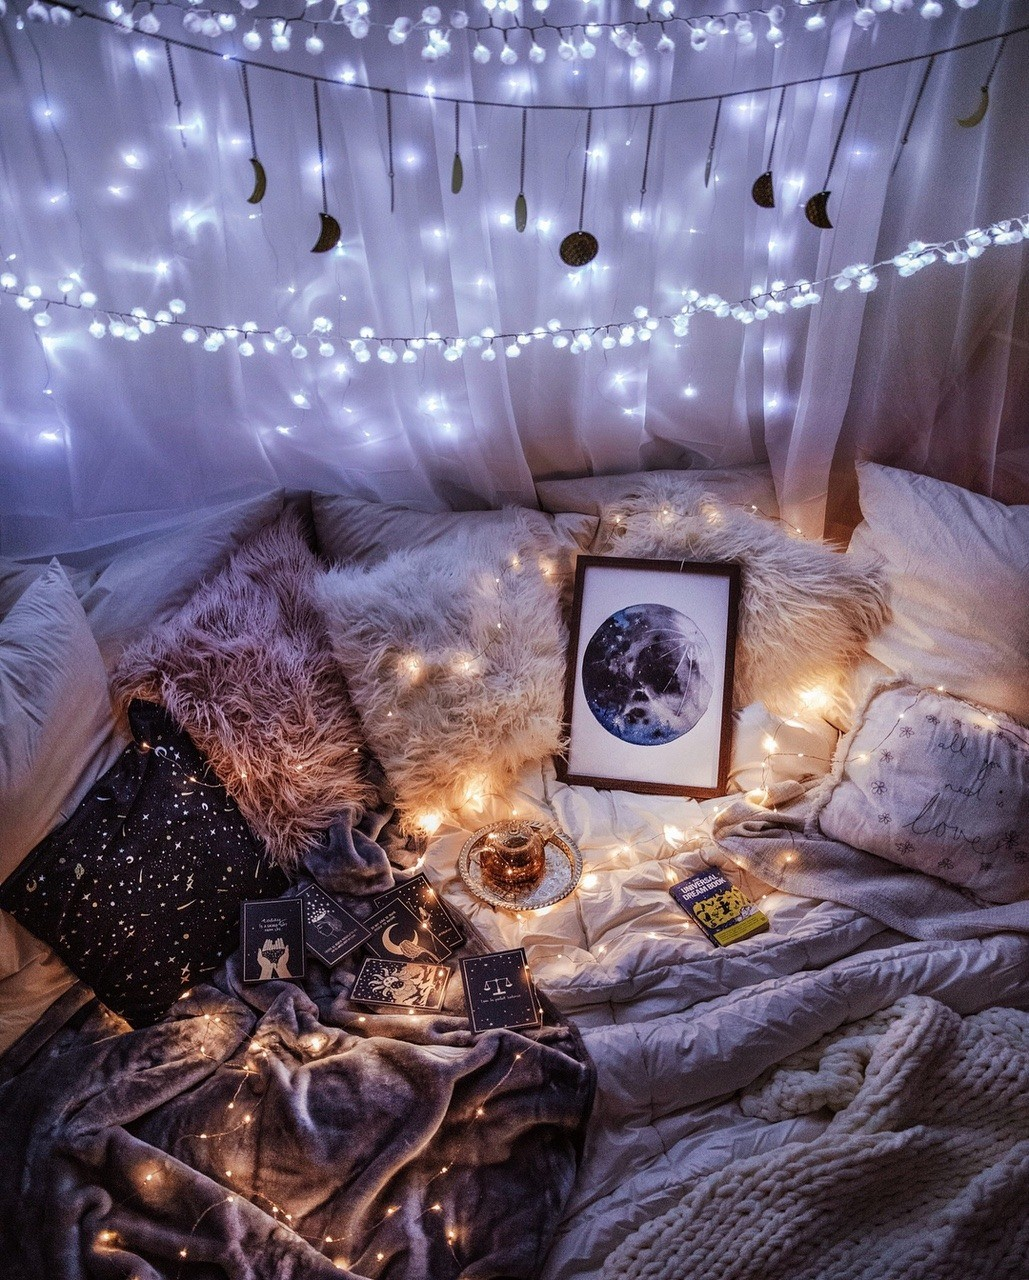 82 Images About Cozy Bed Aesthetic On We Heart It See More About Home Bed And Bedroom